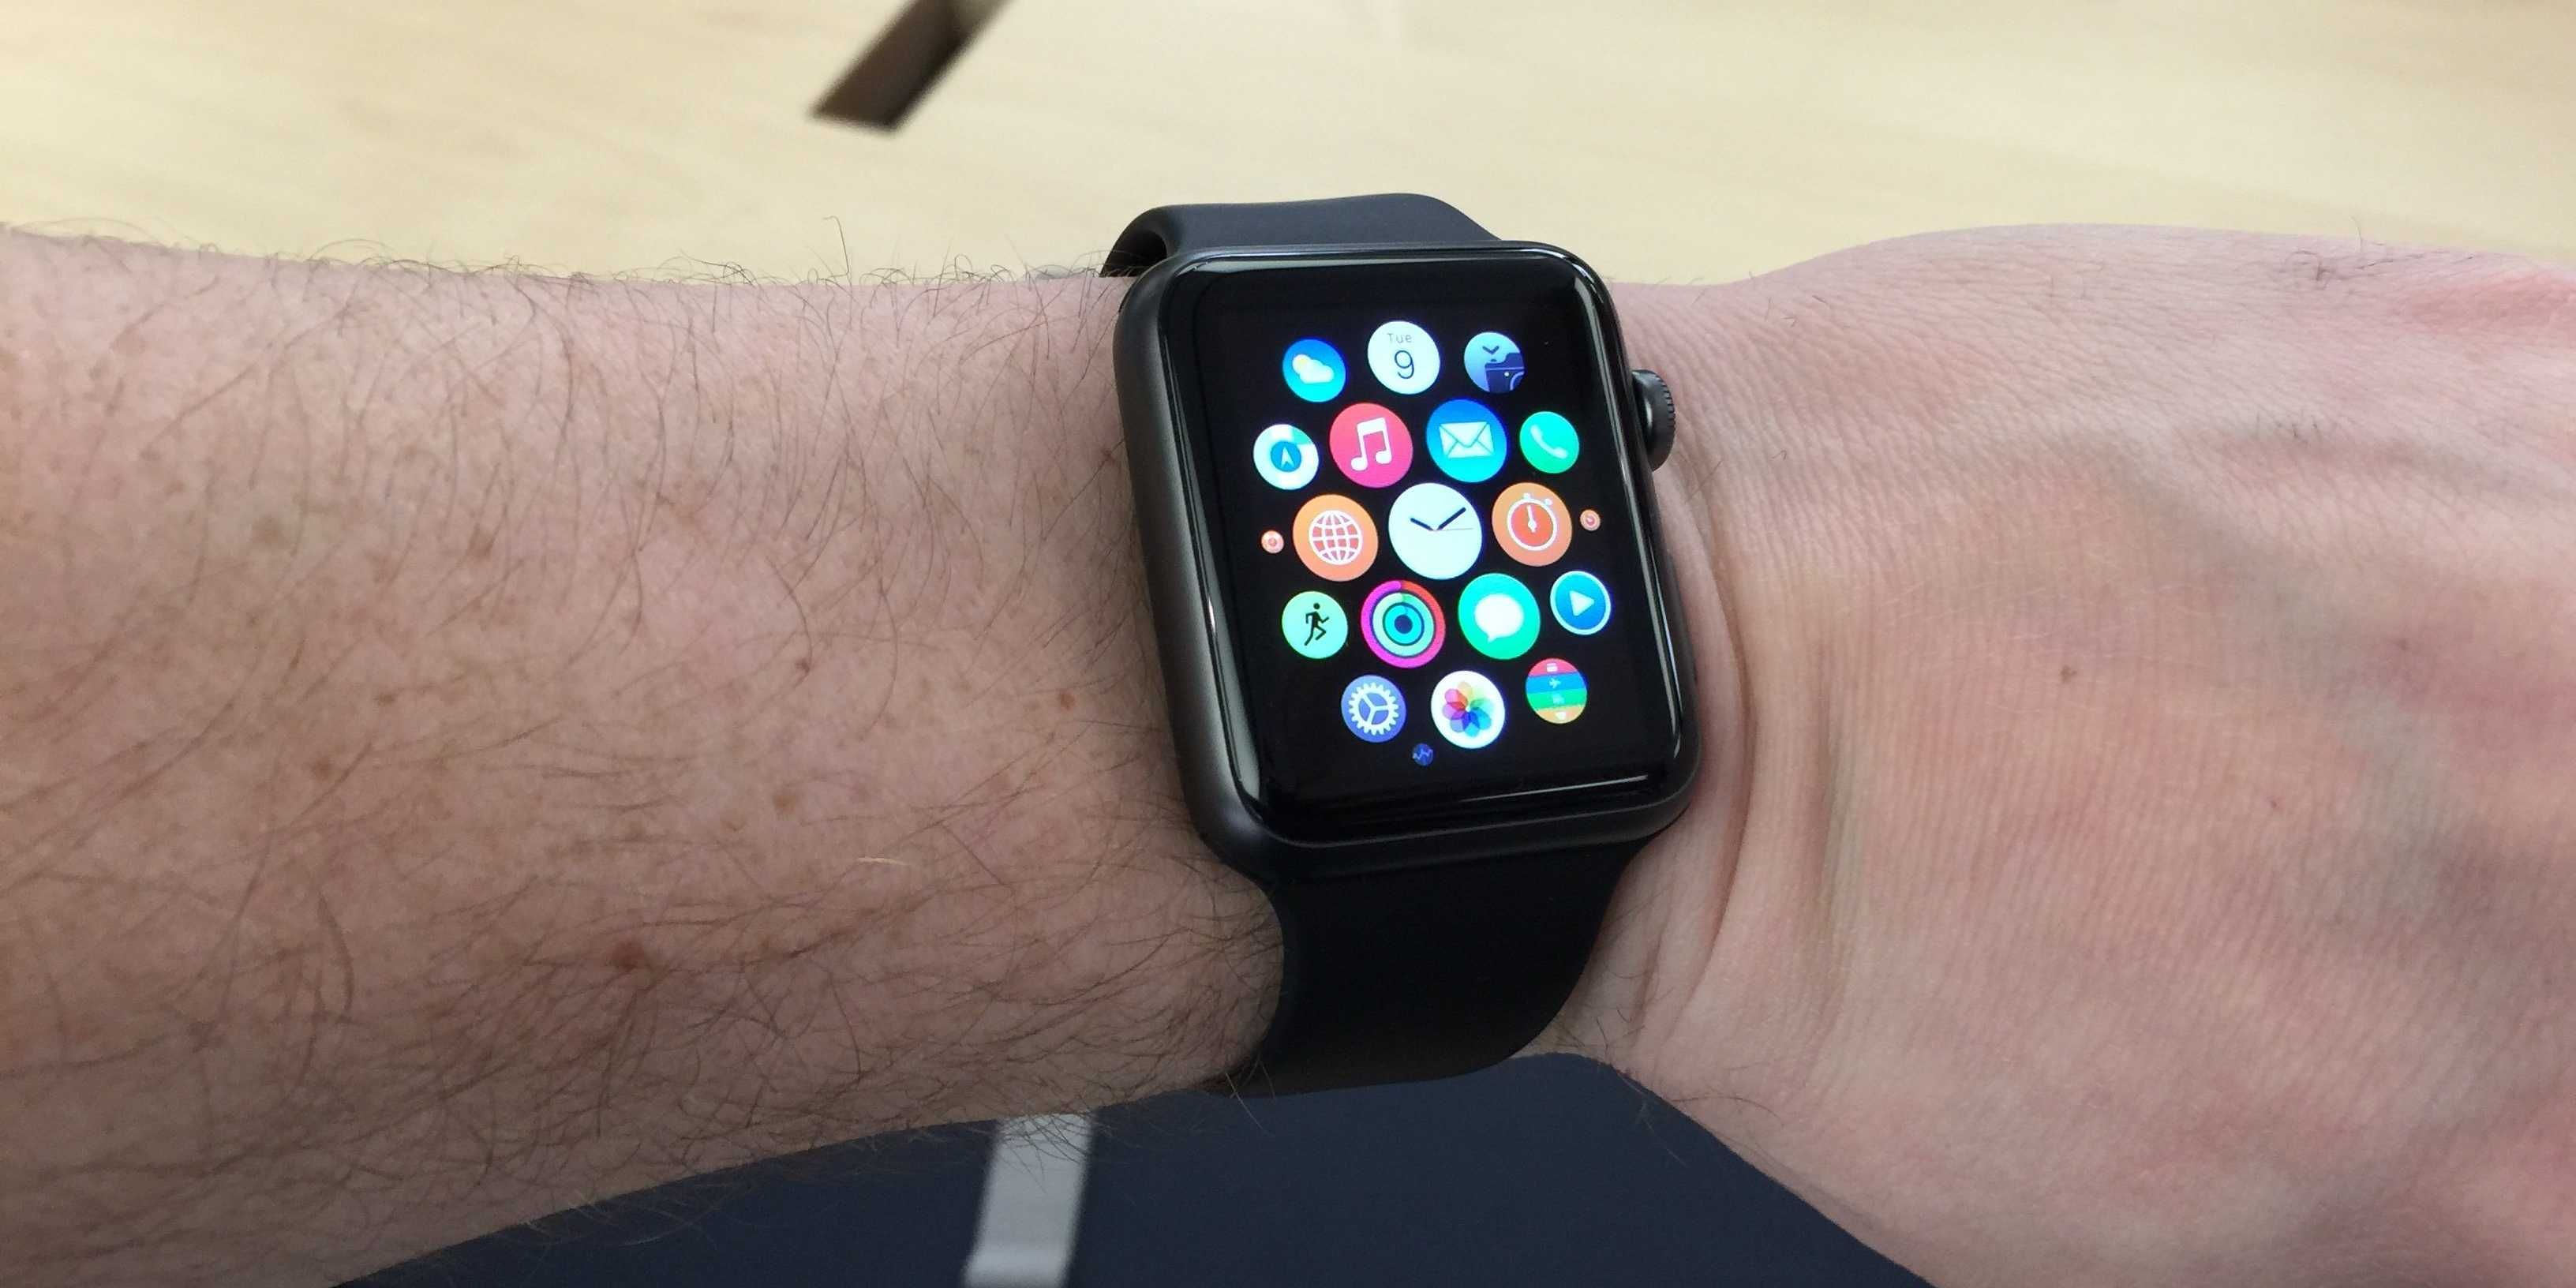 The 15 Apple Watch apps you need to download first